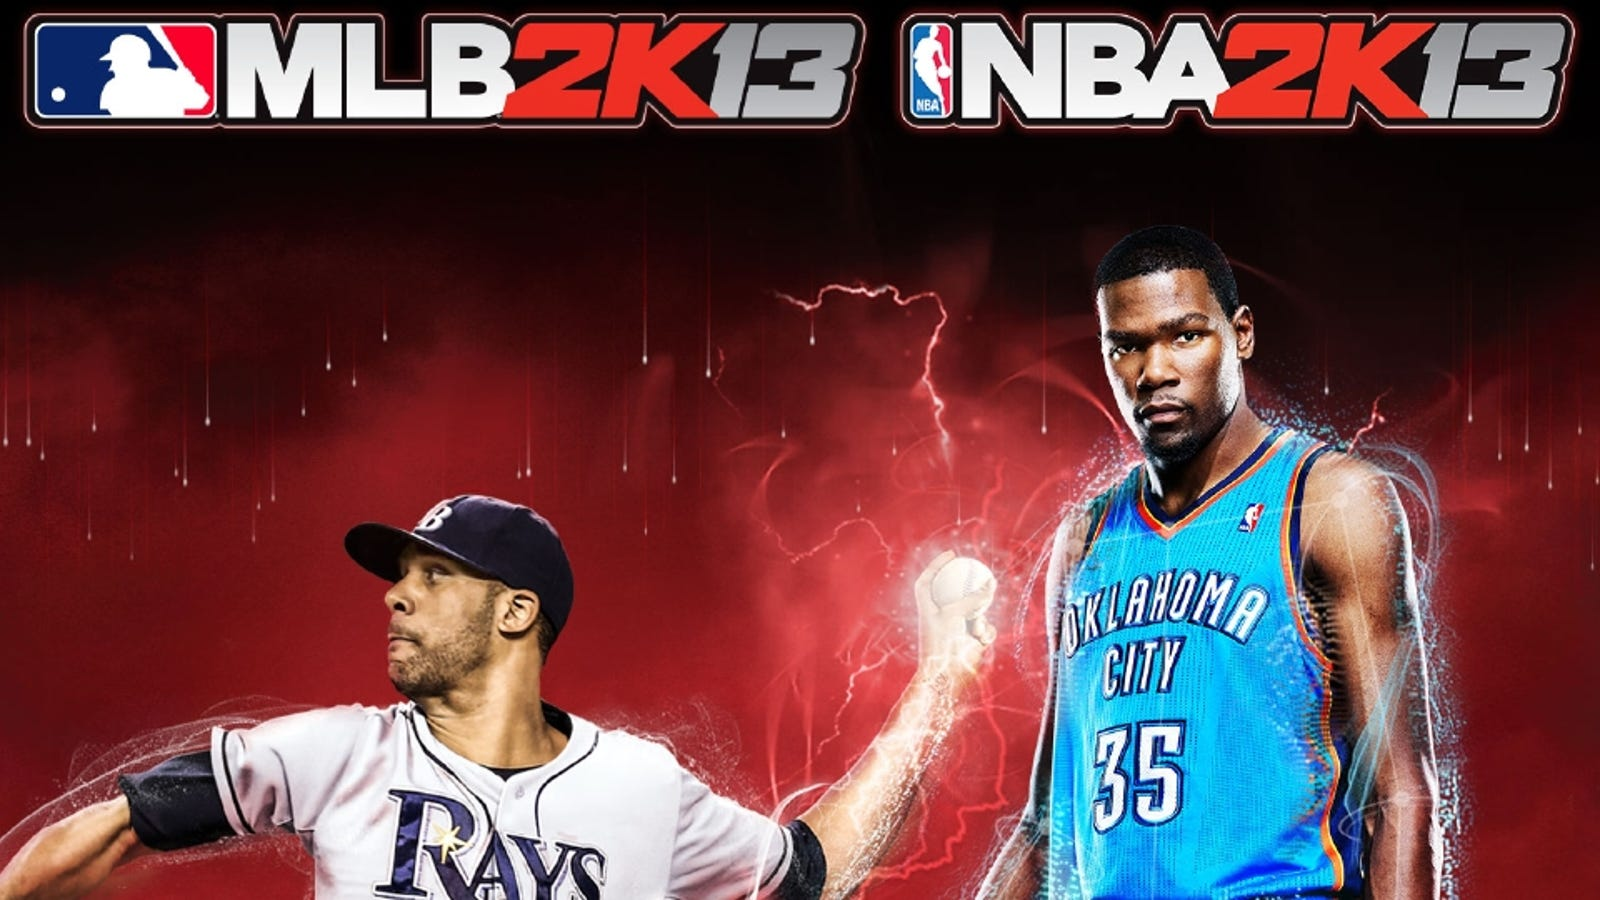 2k Sports Duct Tapes Mlb 2k13 To Nba 2k13 And Sells It For